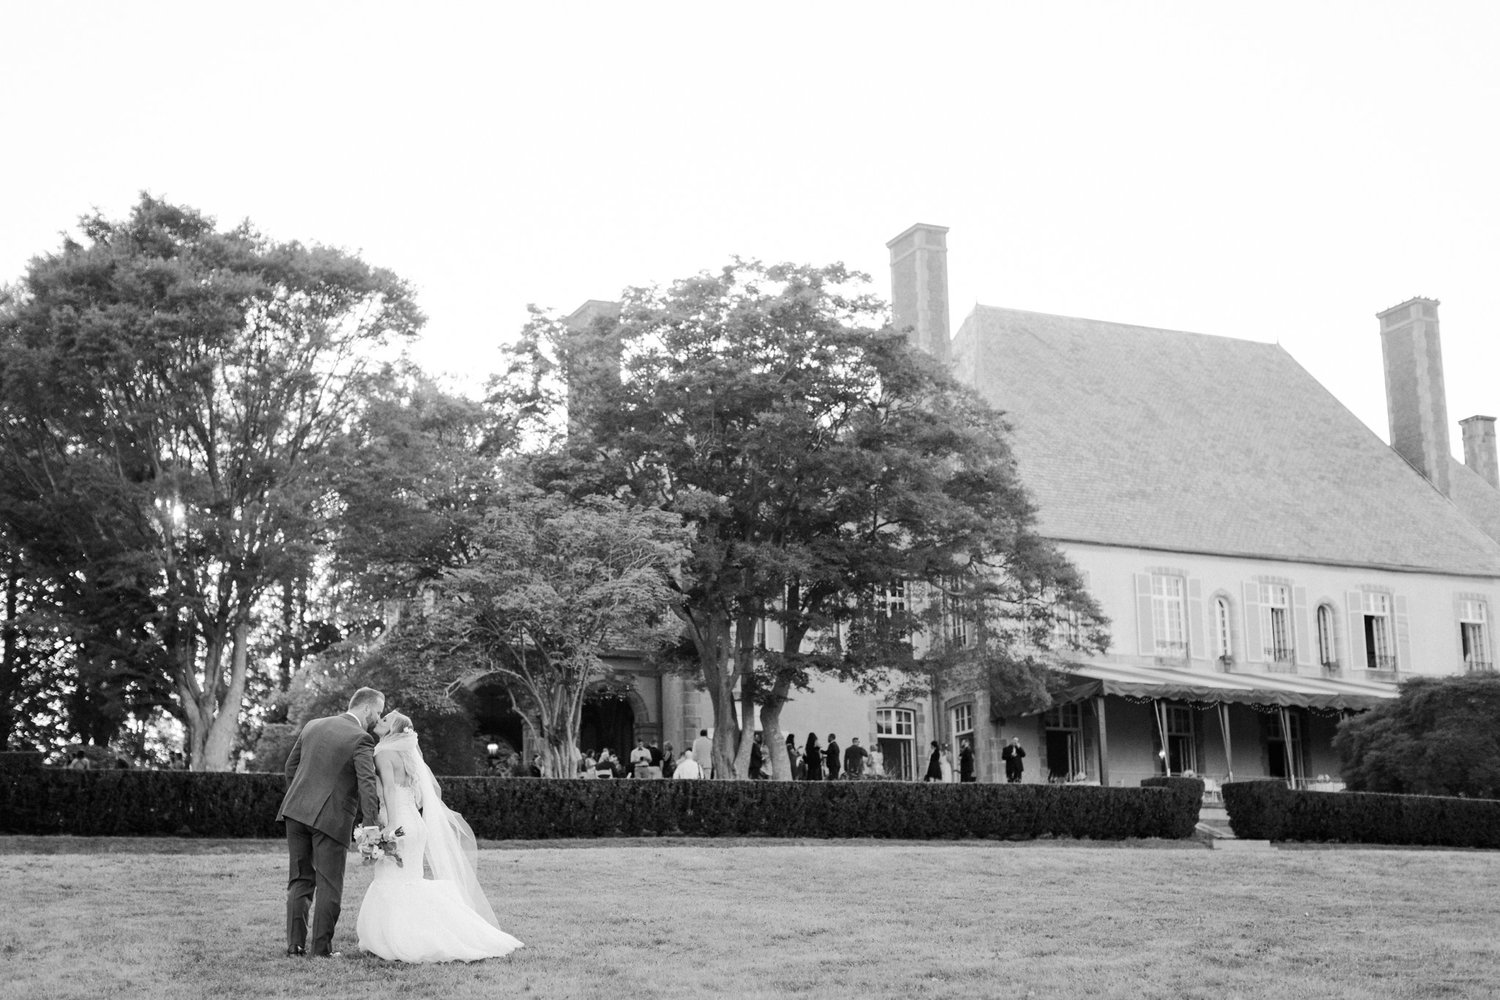 glen_manor_house_wedding_deborah_zoe_00047.JPG